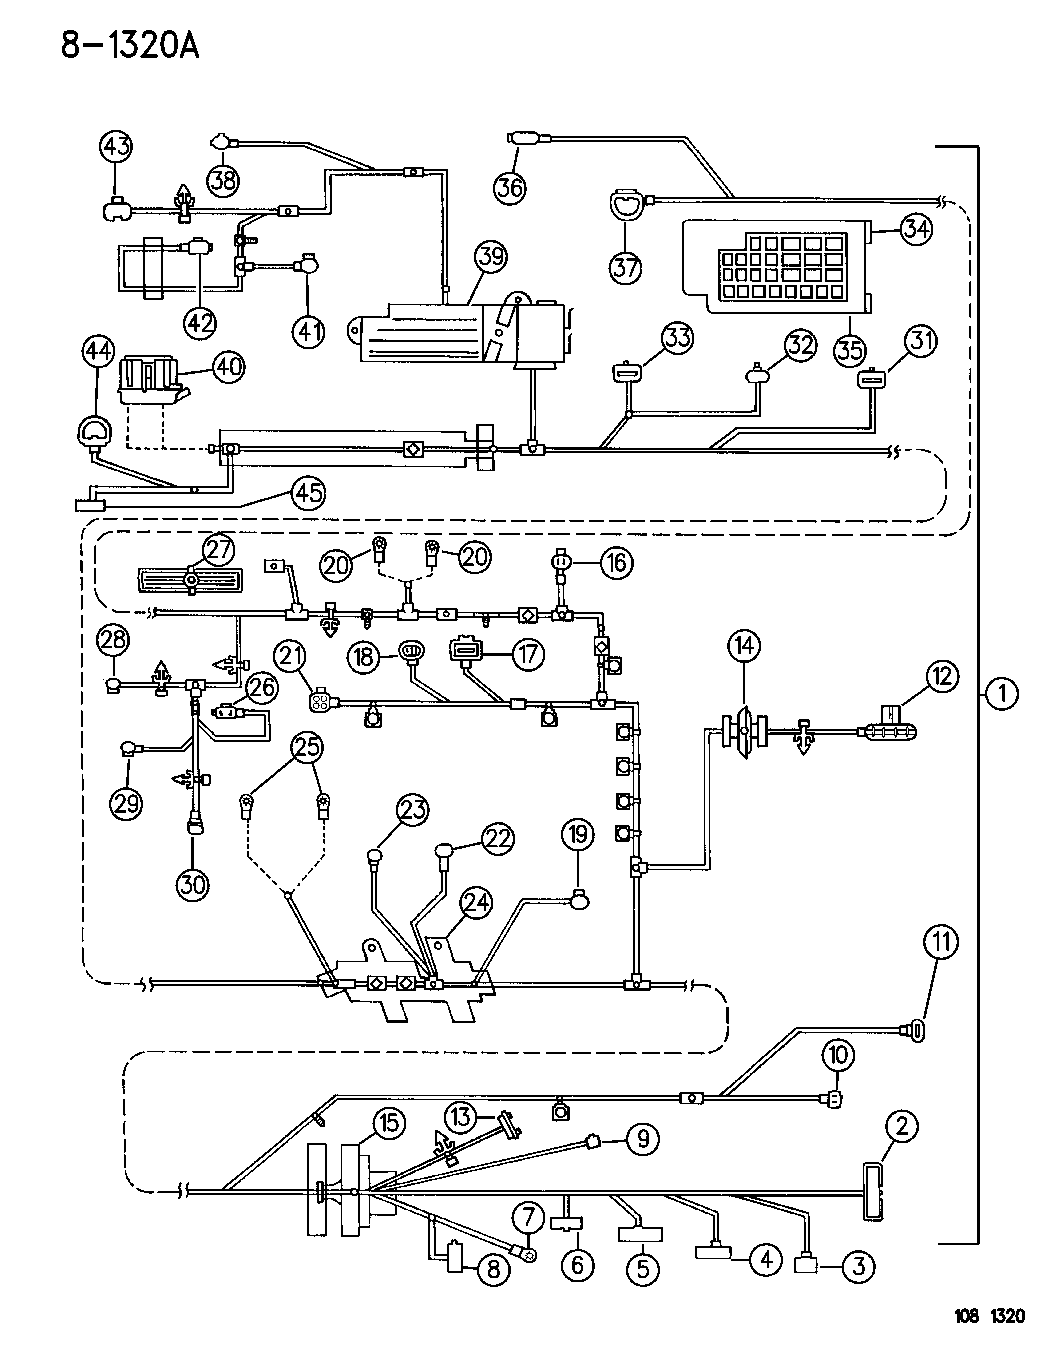 1996 Dodge Stratus Wiring Diagram Library Headlamp To Dash